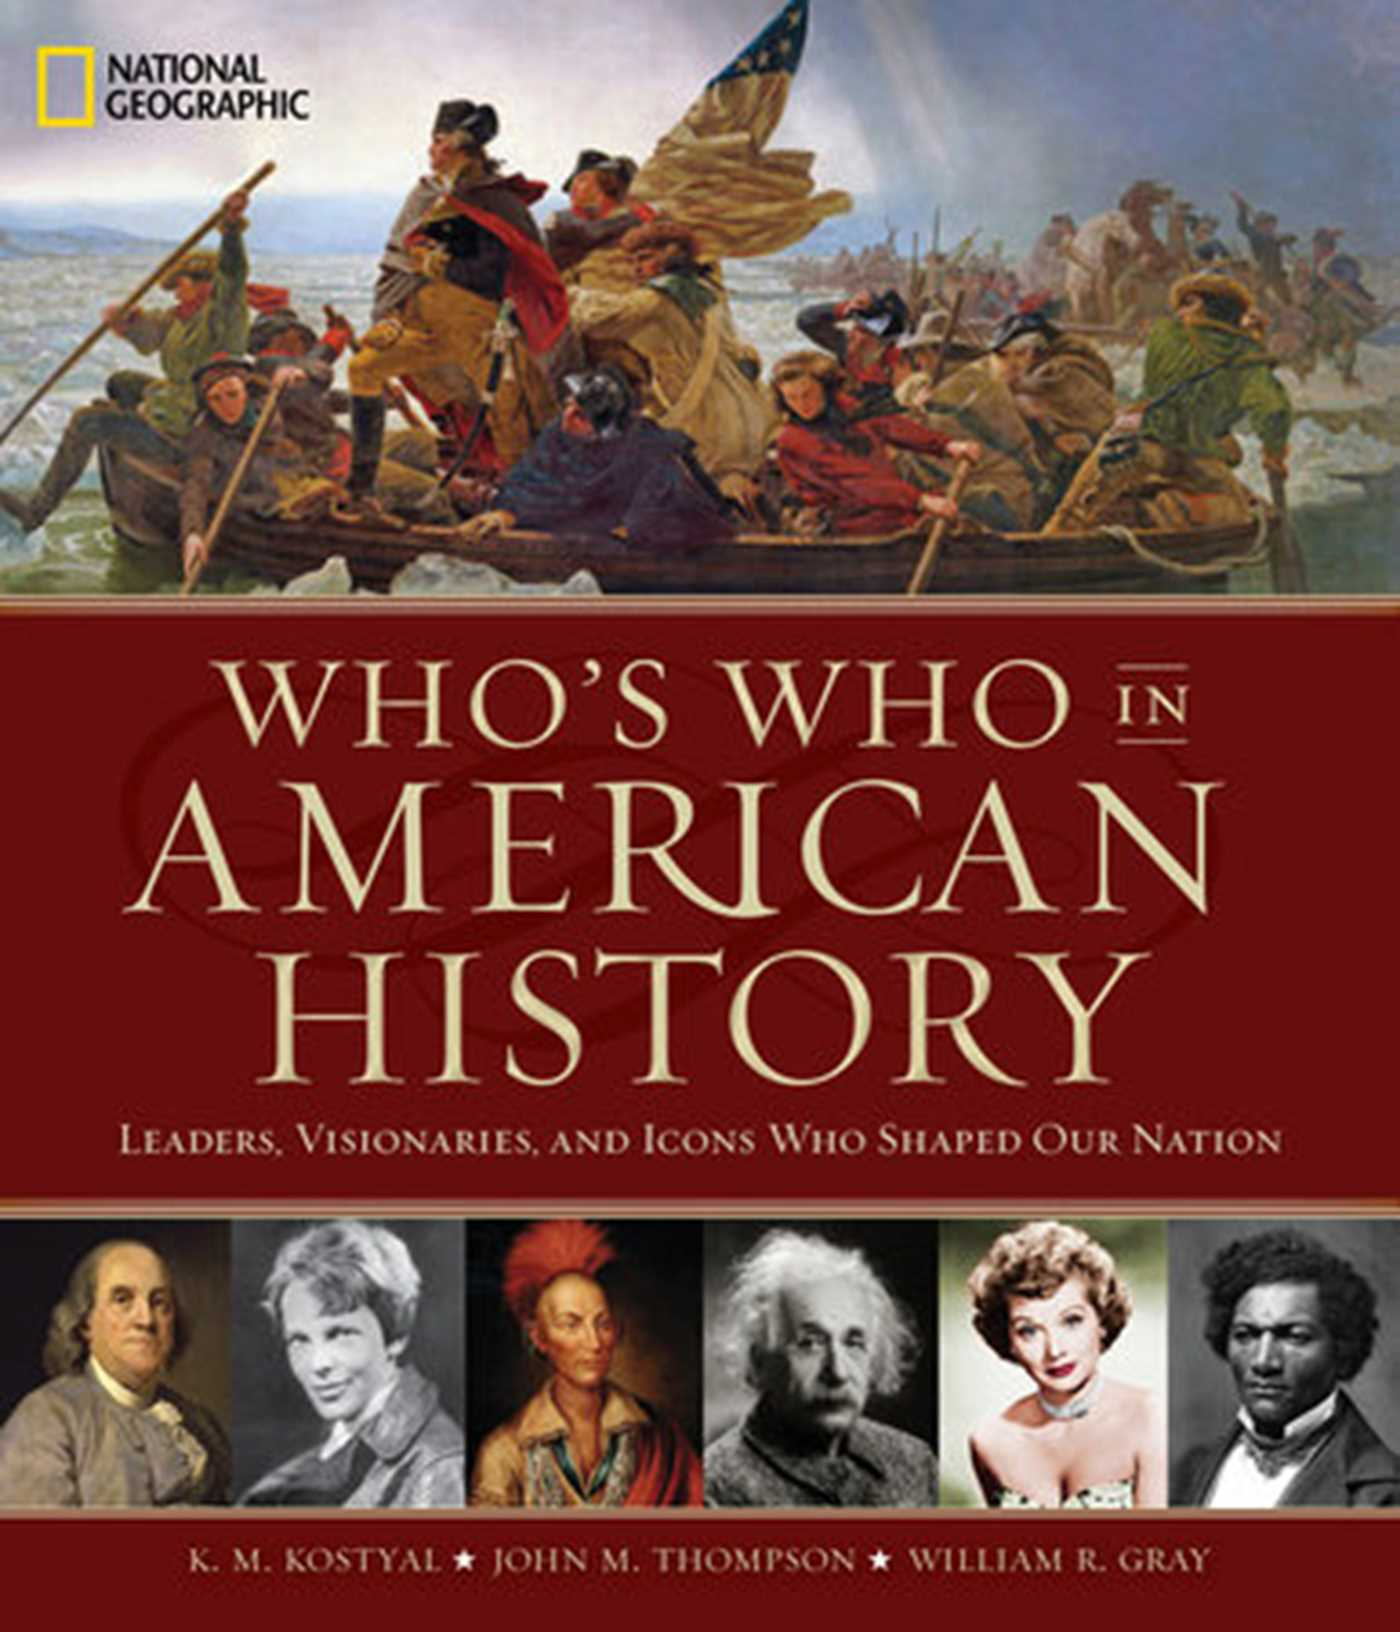 Whos who in american history leaders visonaries and icons who shaped our nation 9781426218347 hr